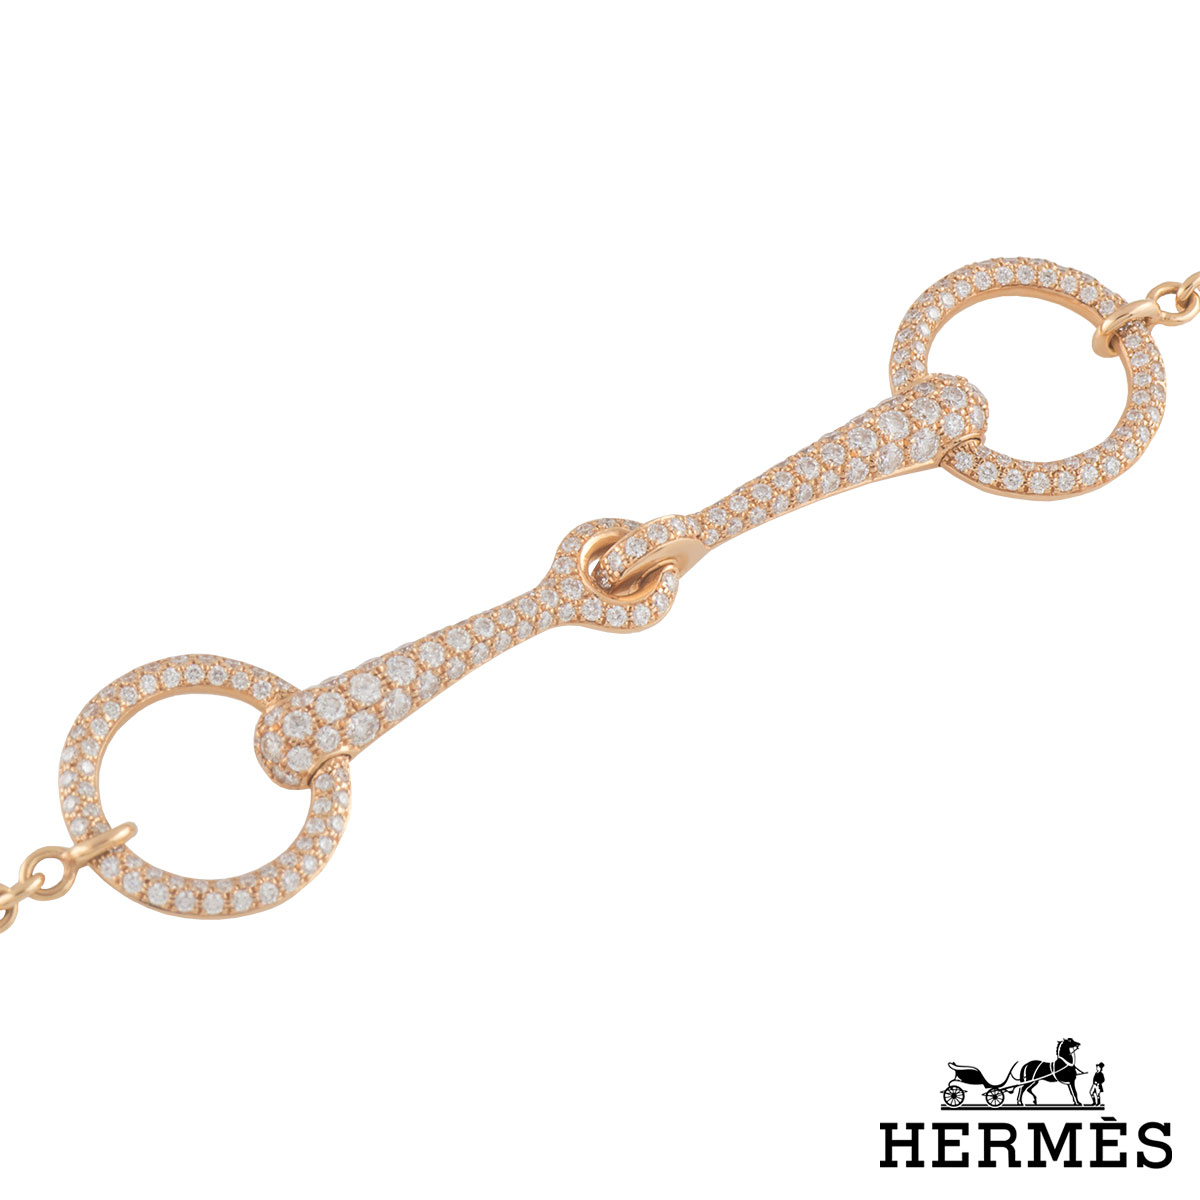 Hermes Rose Gold Diamond Bracelet 0.96ct